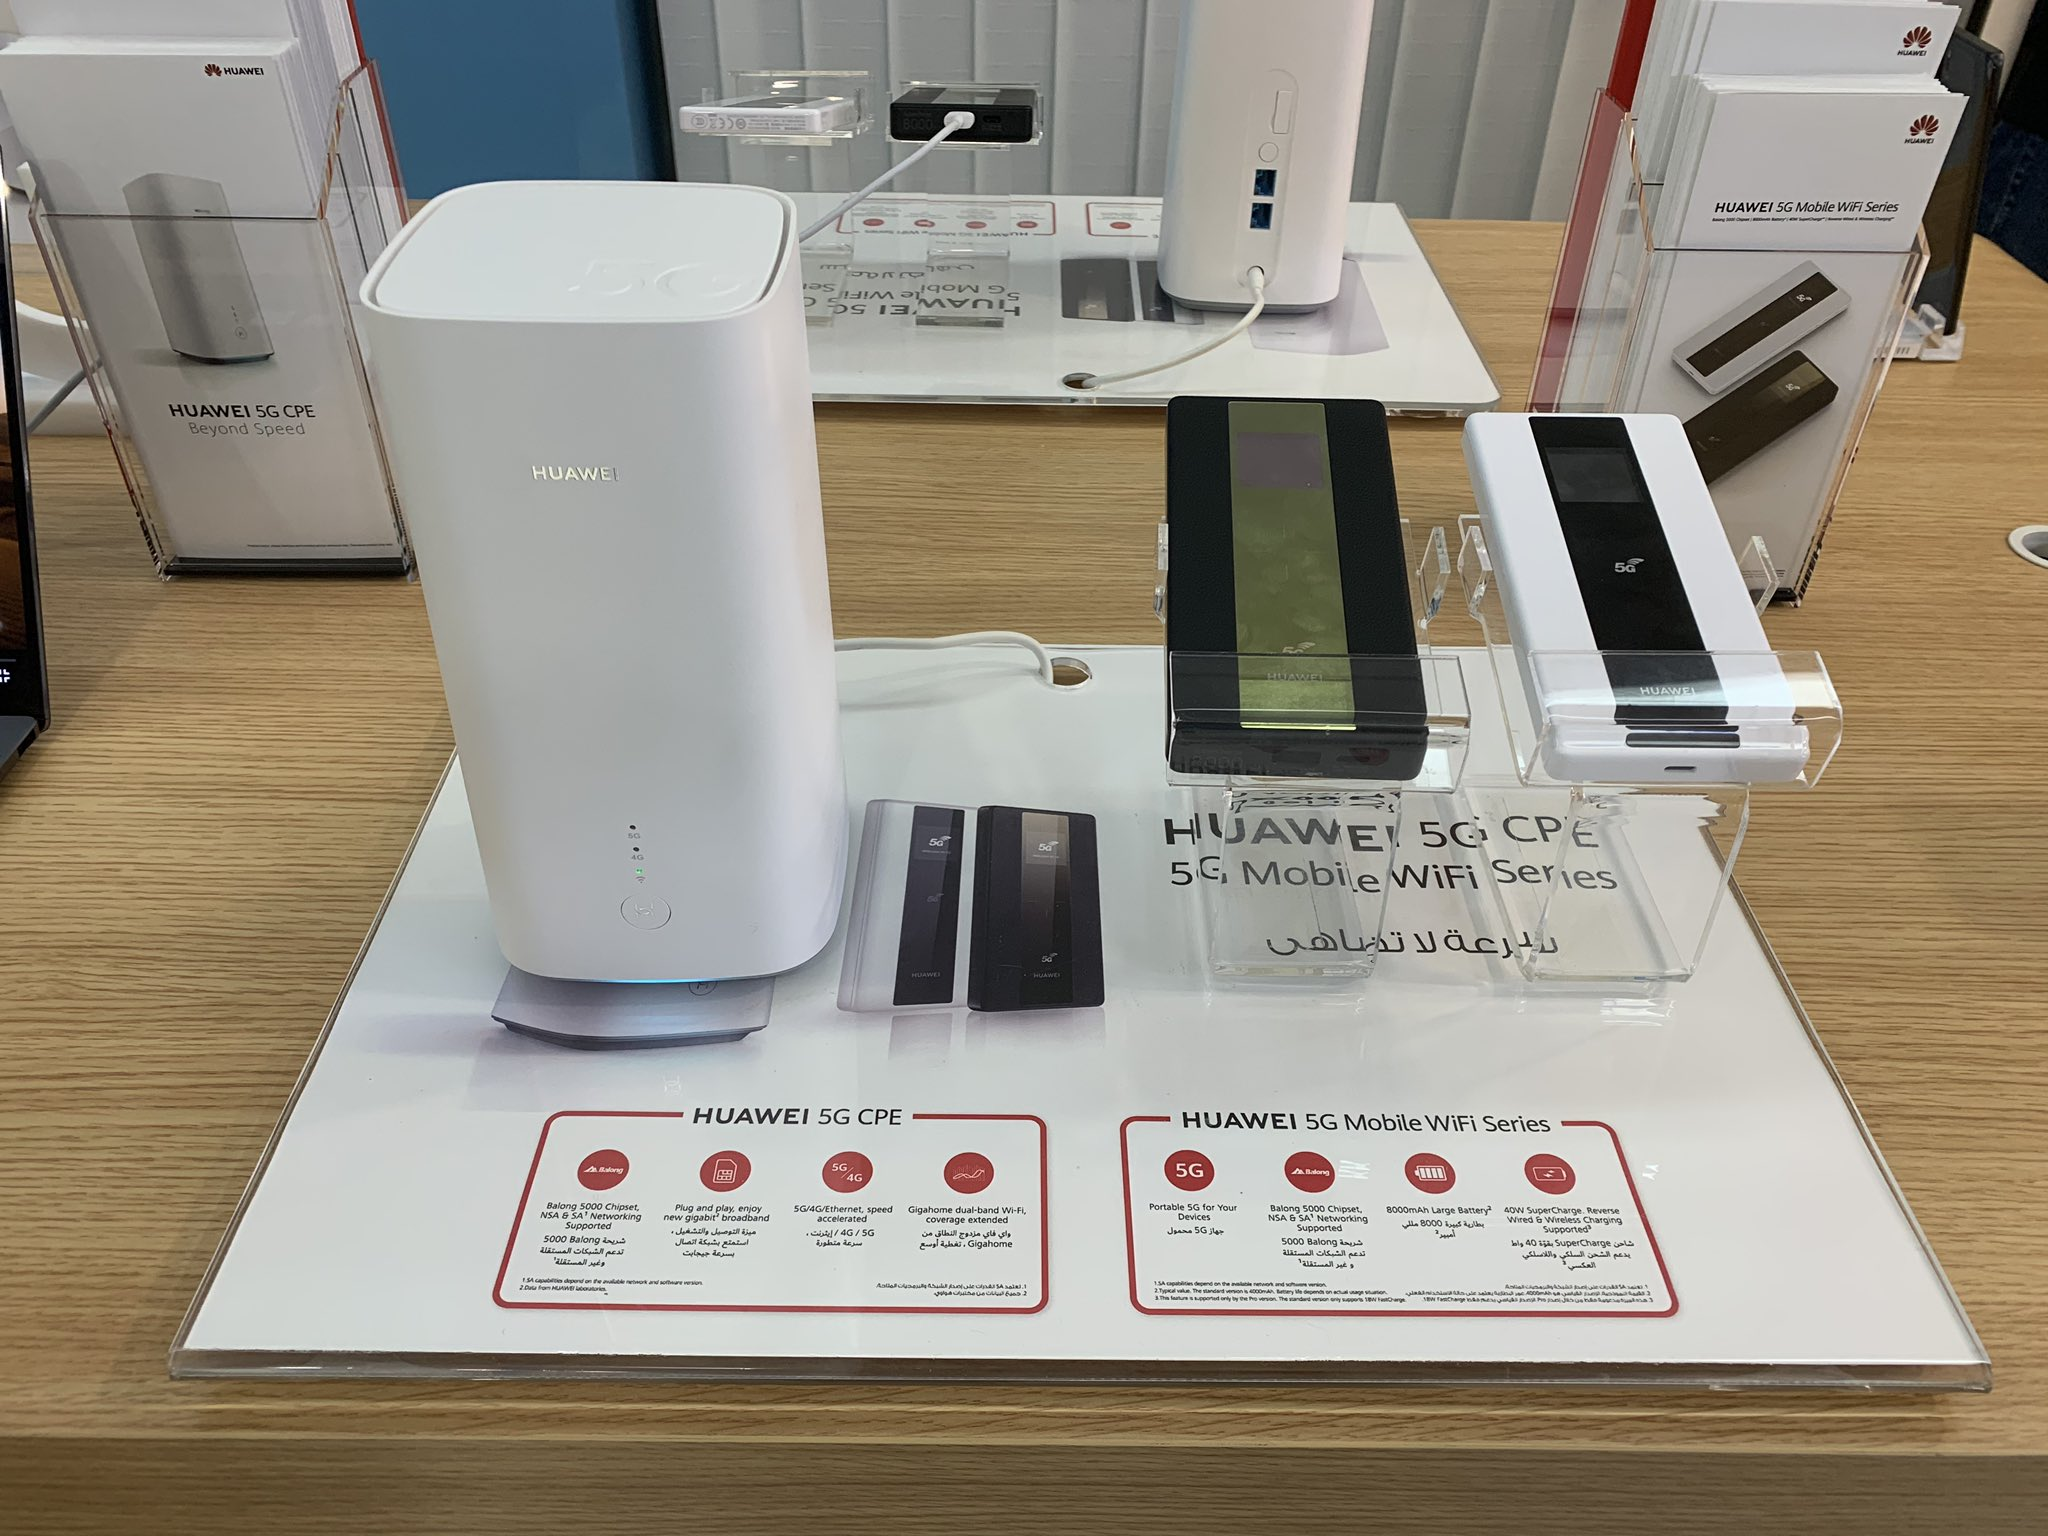 HUAWEI 5G CPE, HUAWEI 5G Mobile WiFi Pro and the HUAWEI 5G Mobile WiFi